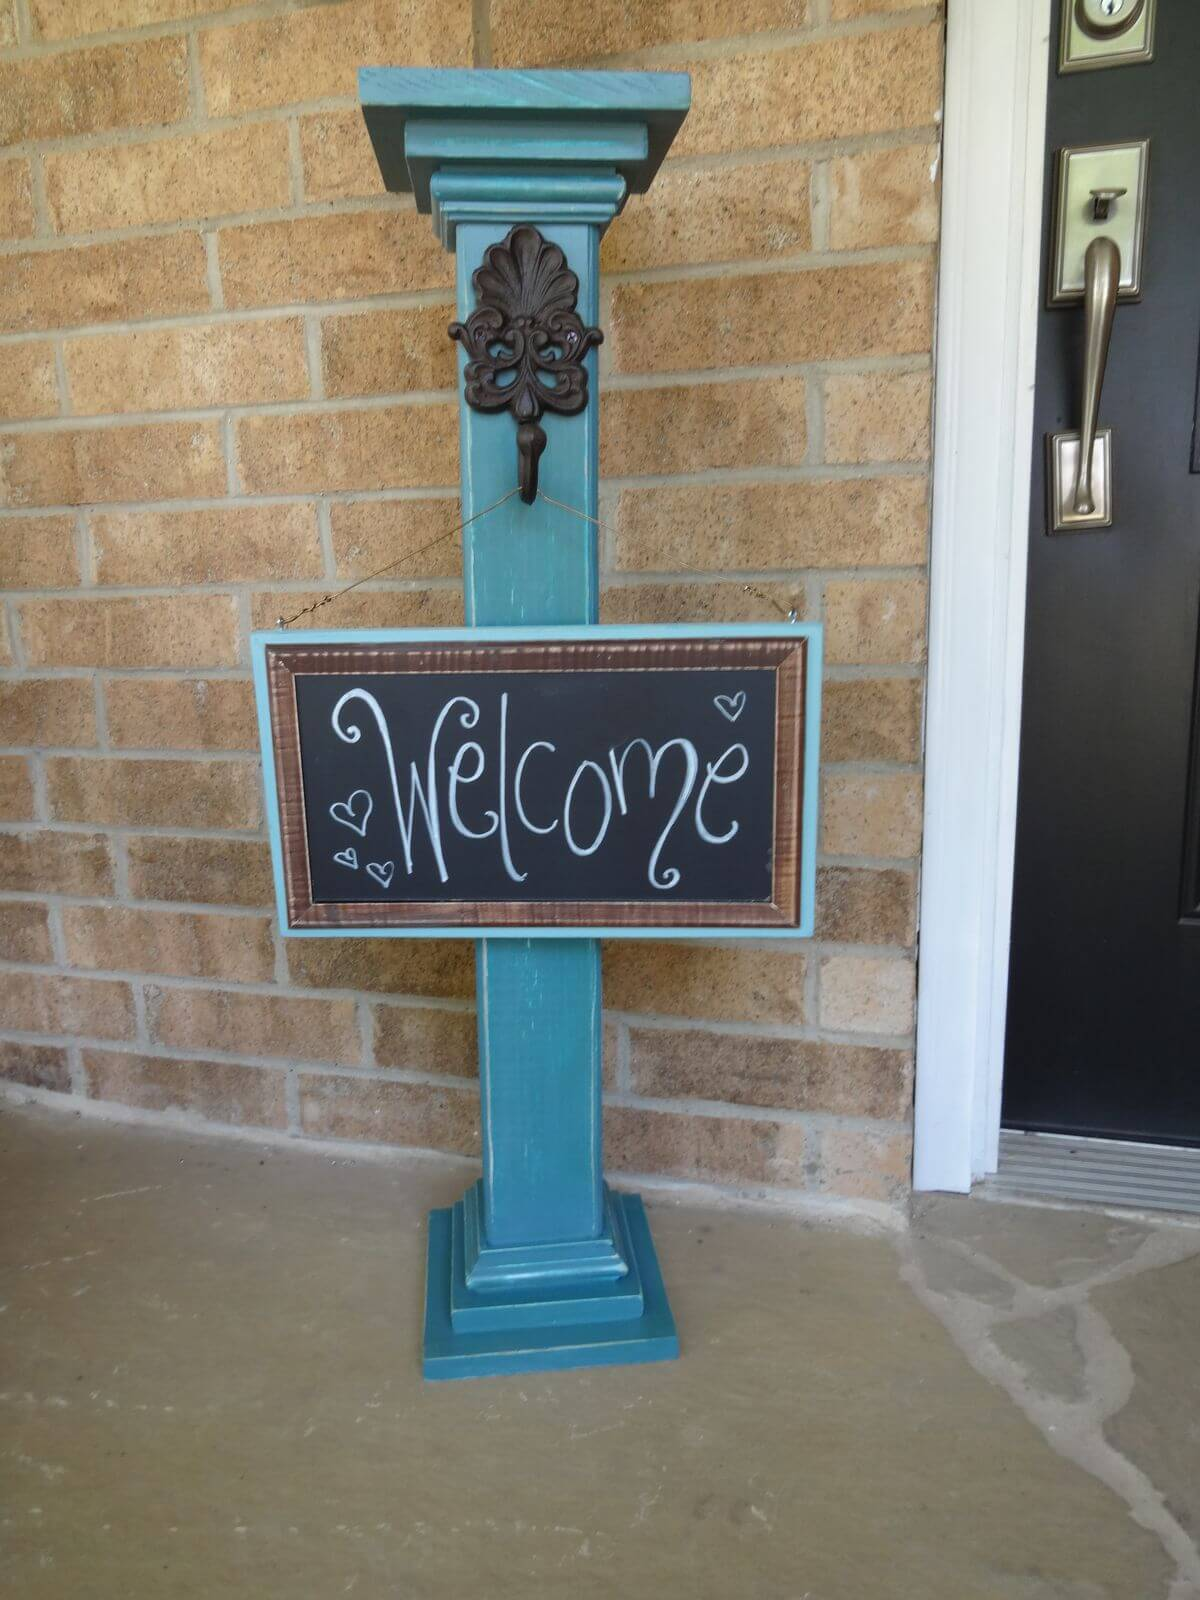 24 Best Front Porch Welcome Post Ideas And Designs For 2018. Los Angeles Real Estate Attorney. Christian Seminary Schools Jackson Bail Bonds. South Florida Moving Companies. Organic Mass Spectrometry Pacific Auto Repair. Stocks Trading Platform Employment Job Boards. Bank Refinancing Rates Vc 23152 A Misdemeanor. Websites To Find Colleges Siemens Real Estate. Phoenix Window Cleaning Website Response Time